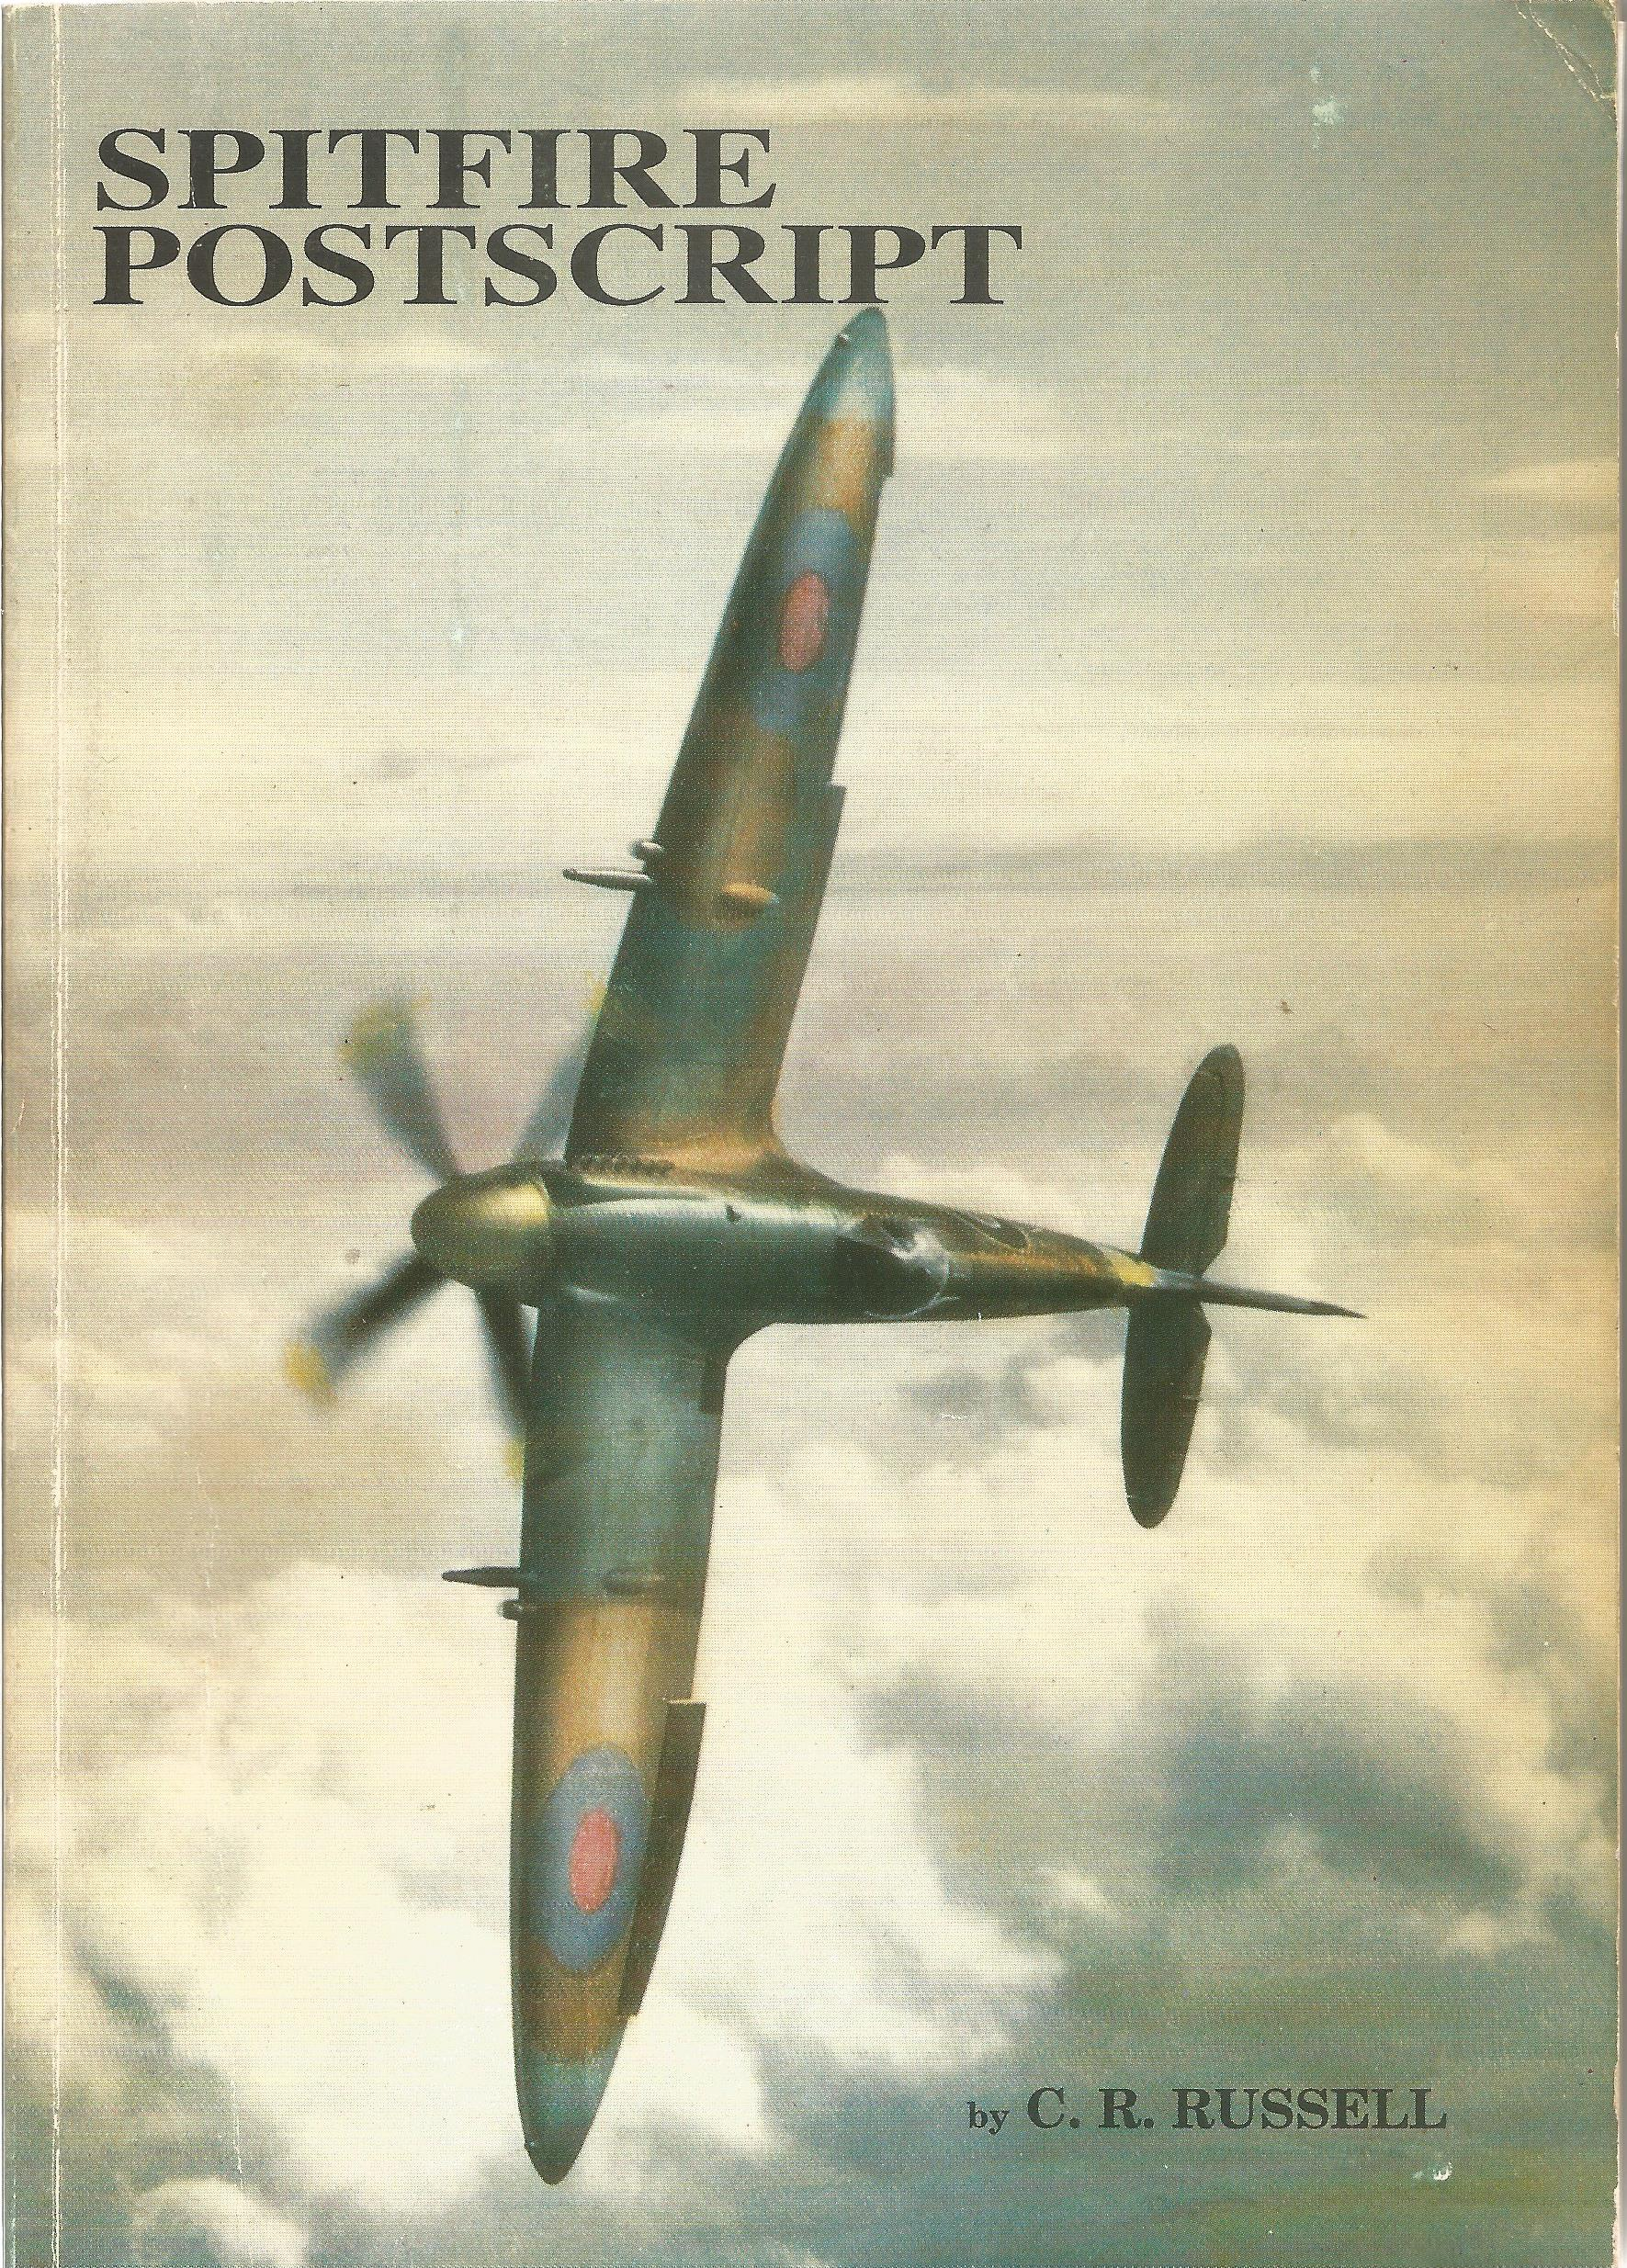 C R Russell. Spitfire Postscript. A WW2 paperback book. The book itself is unsigned. A 204 paged